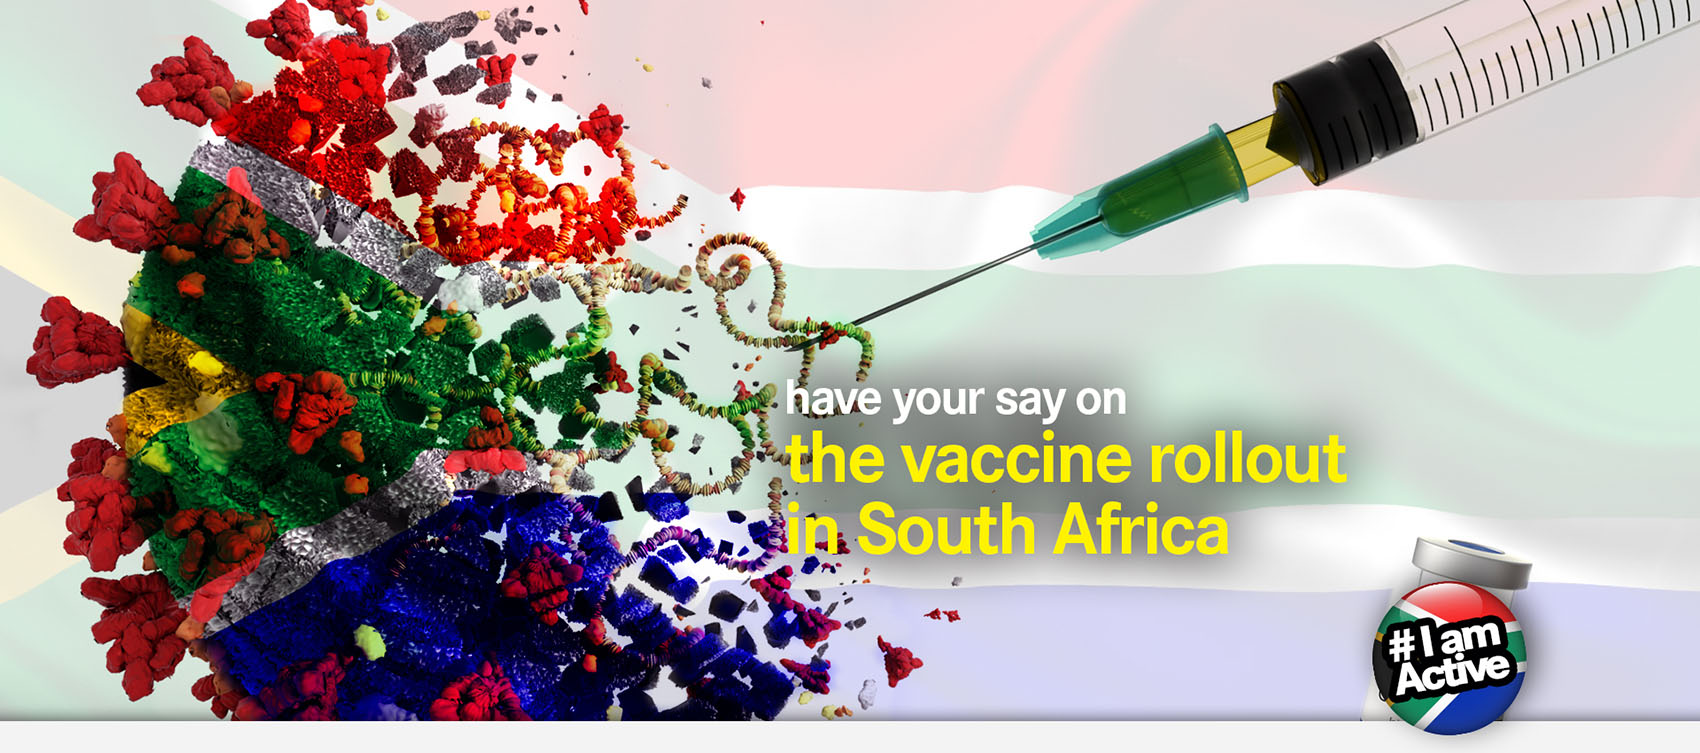 Have your say on vaccine roll-out DearSA covid vaccine